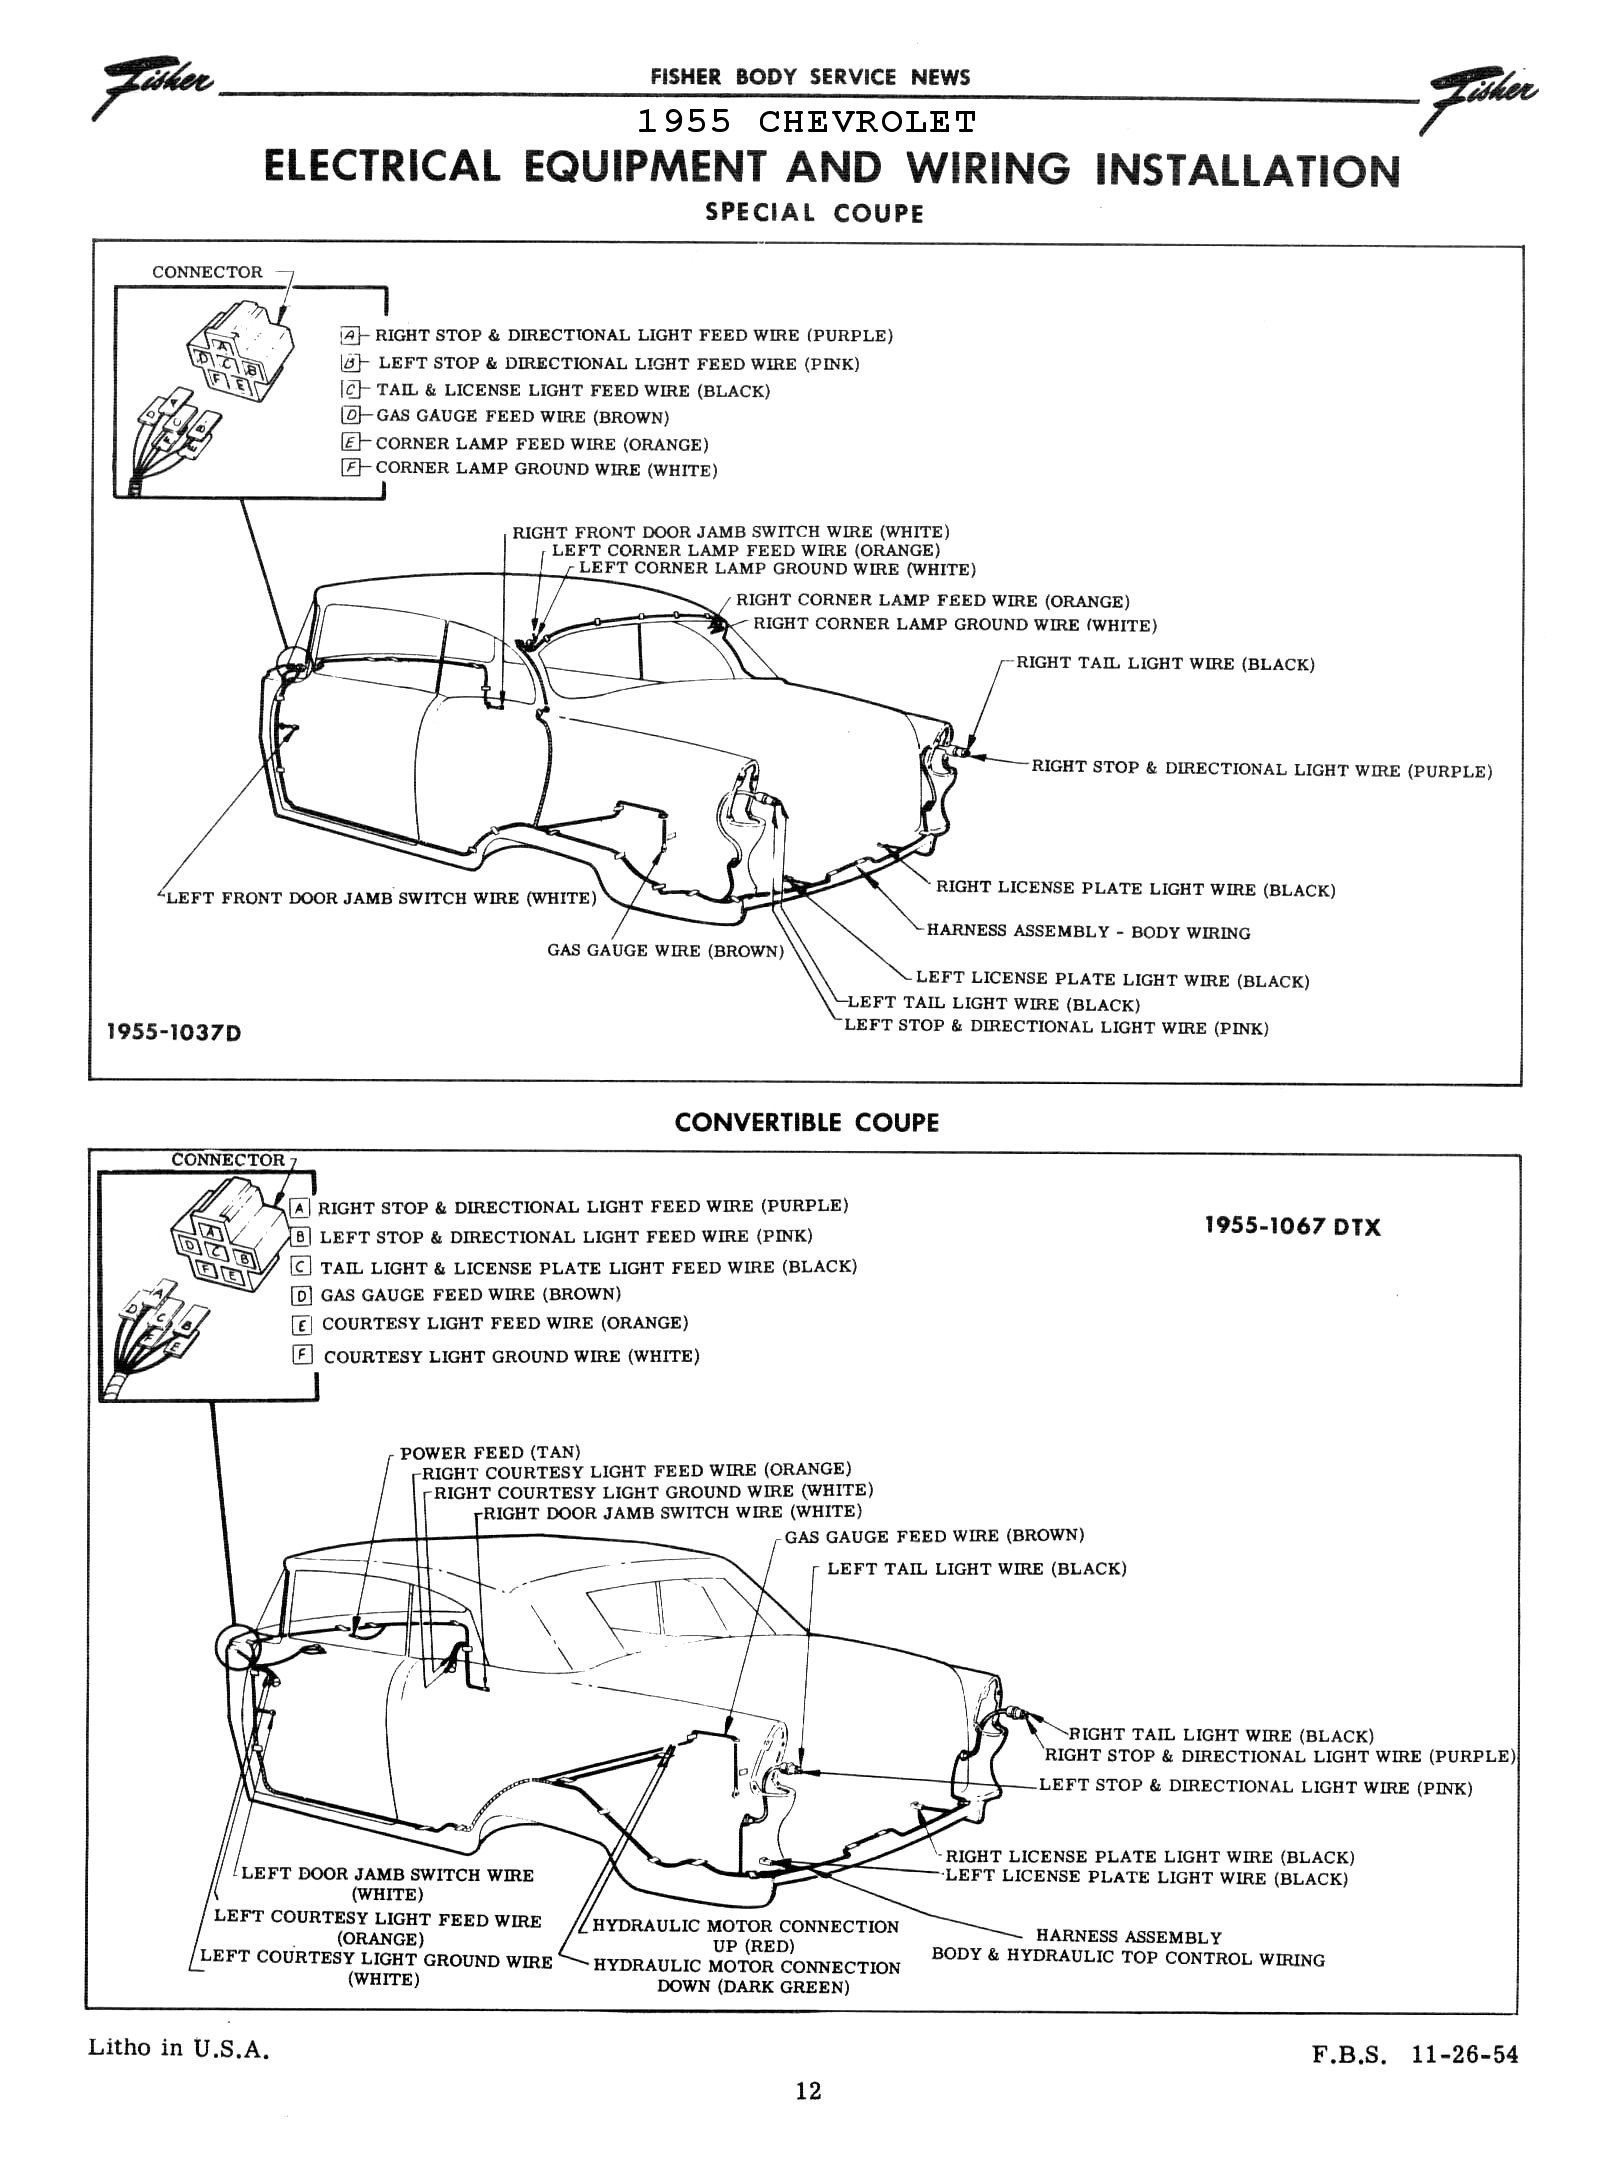 55 chevy tail light wiring harness i have a 55 chevy that i am running efi and have replaced ...